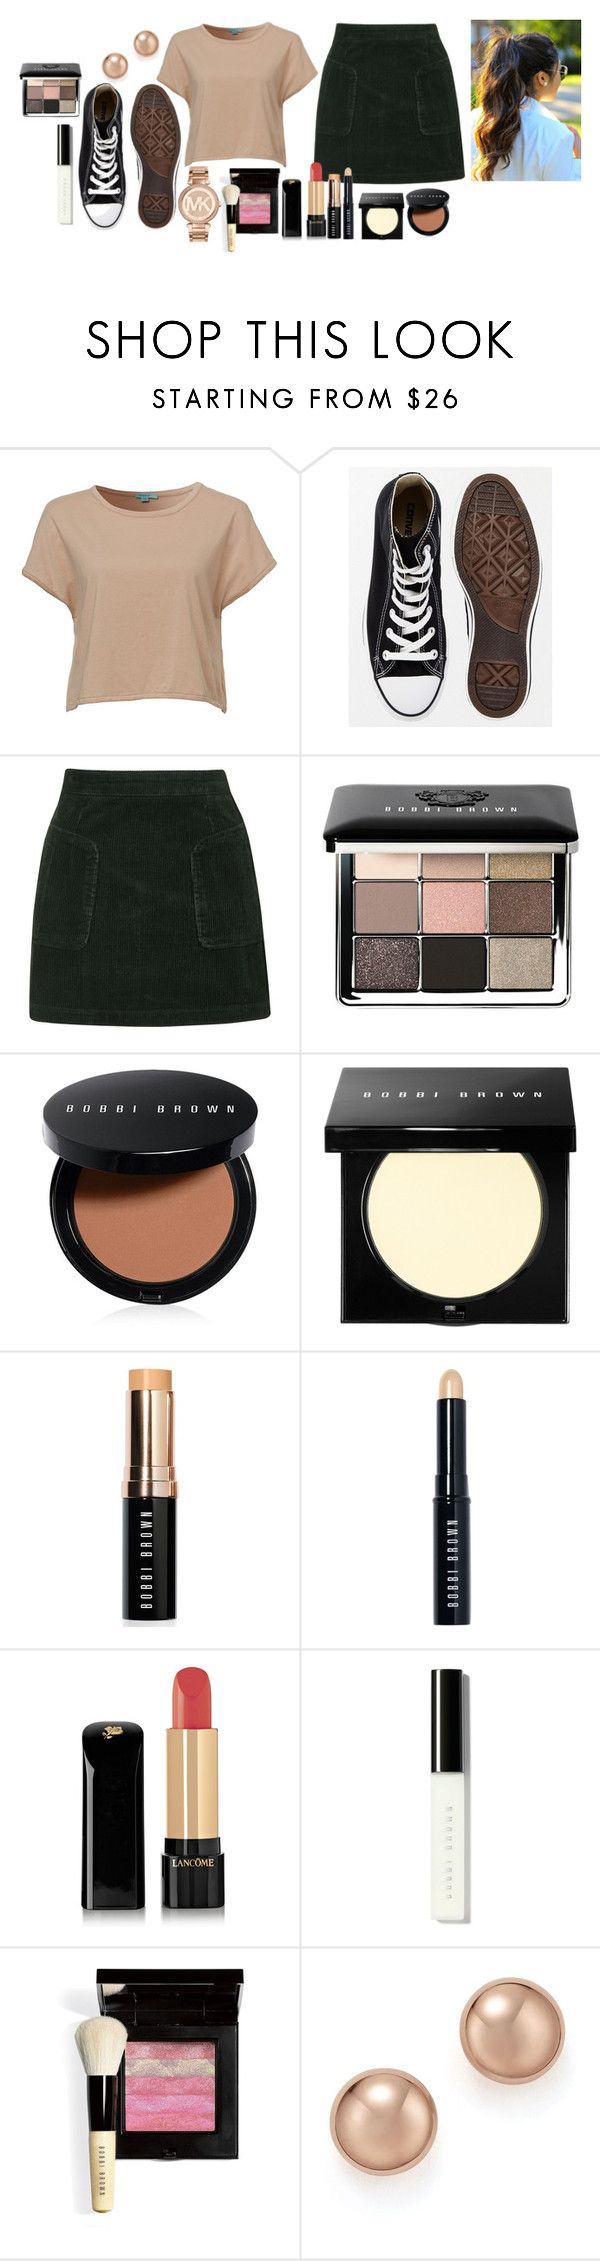 """Untitled #7509"" by gabriellewidger ❤ liked on Polyvore featuring Mavi, Converse, Topshop, Bobbi Brown Cosmetics, Lancôme, Bloomingdale's and Michael Kors"